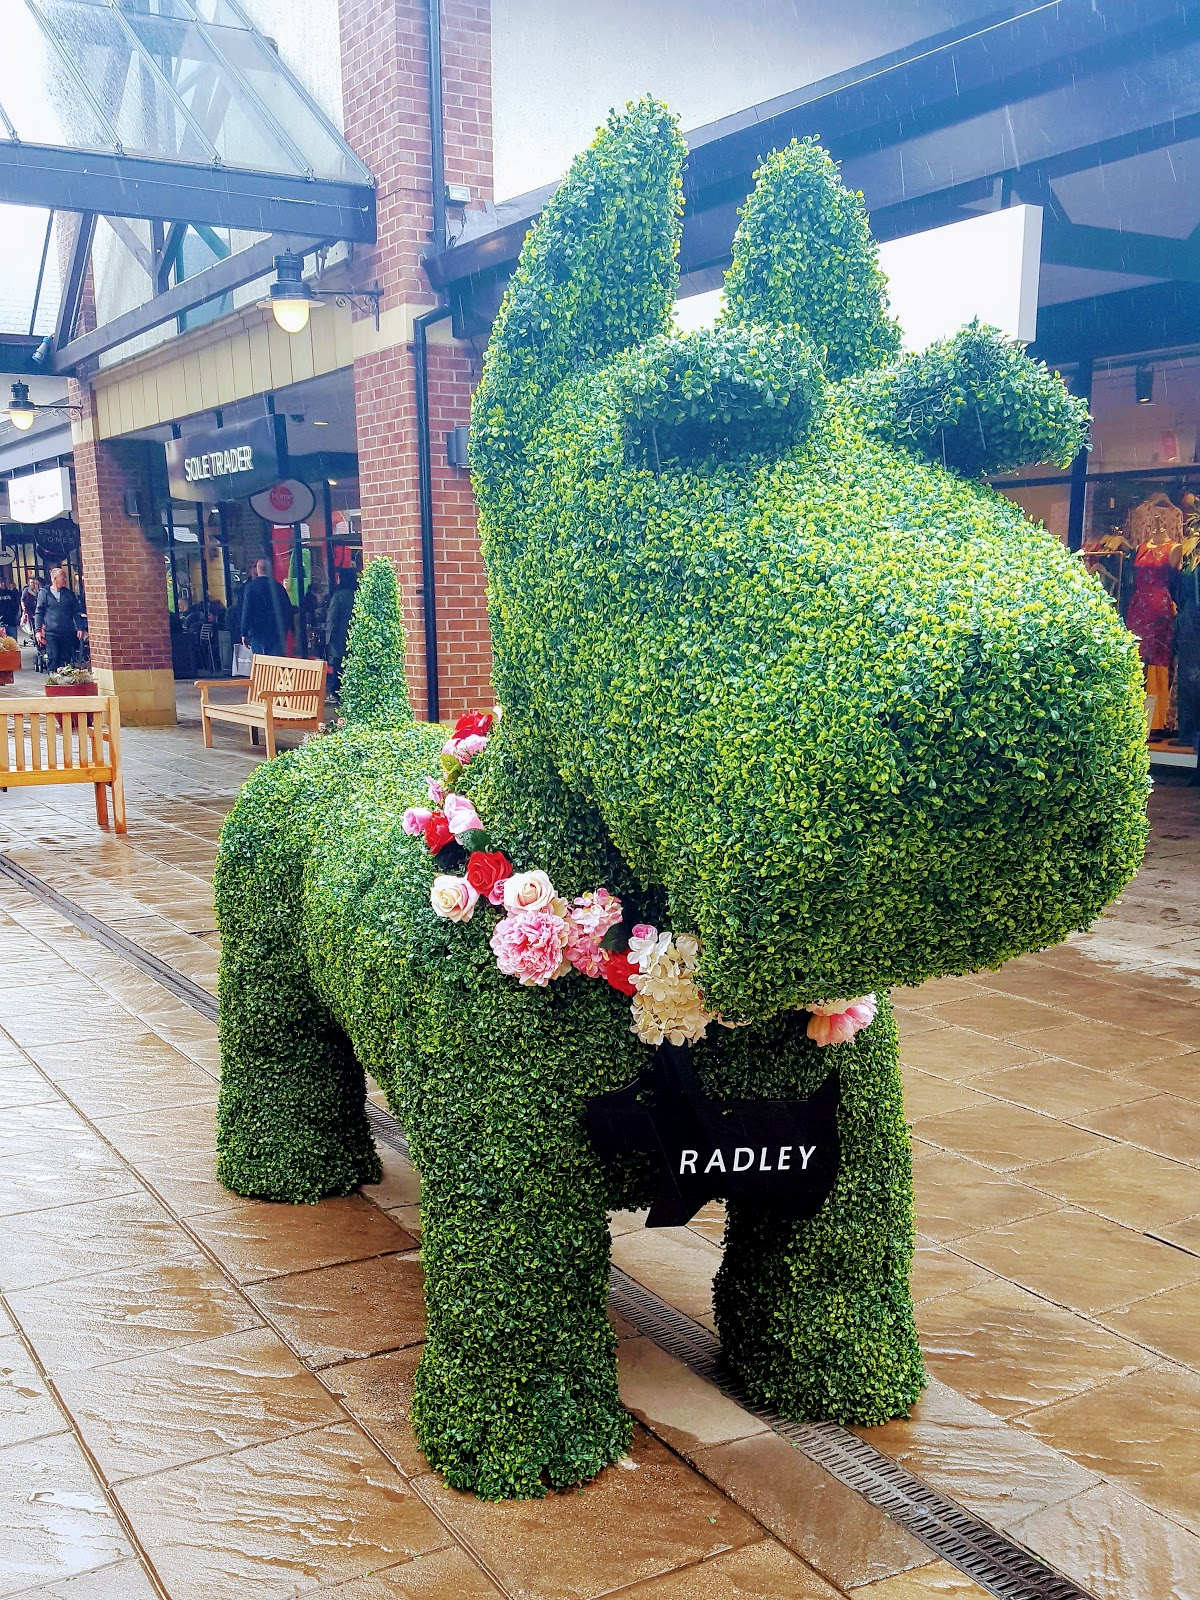 Big Radley Dog: Welcome To The Weekend Blog Hop